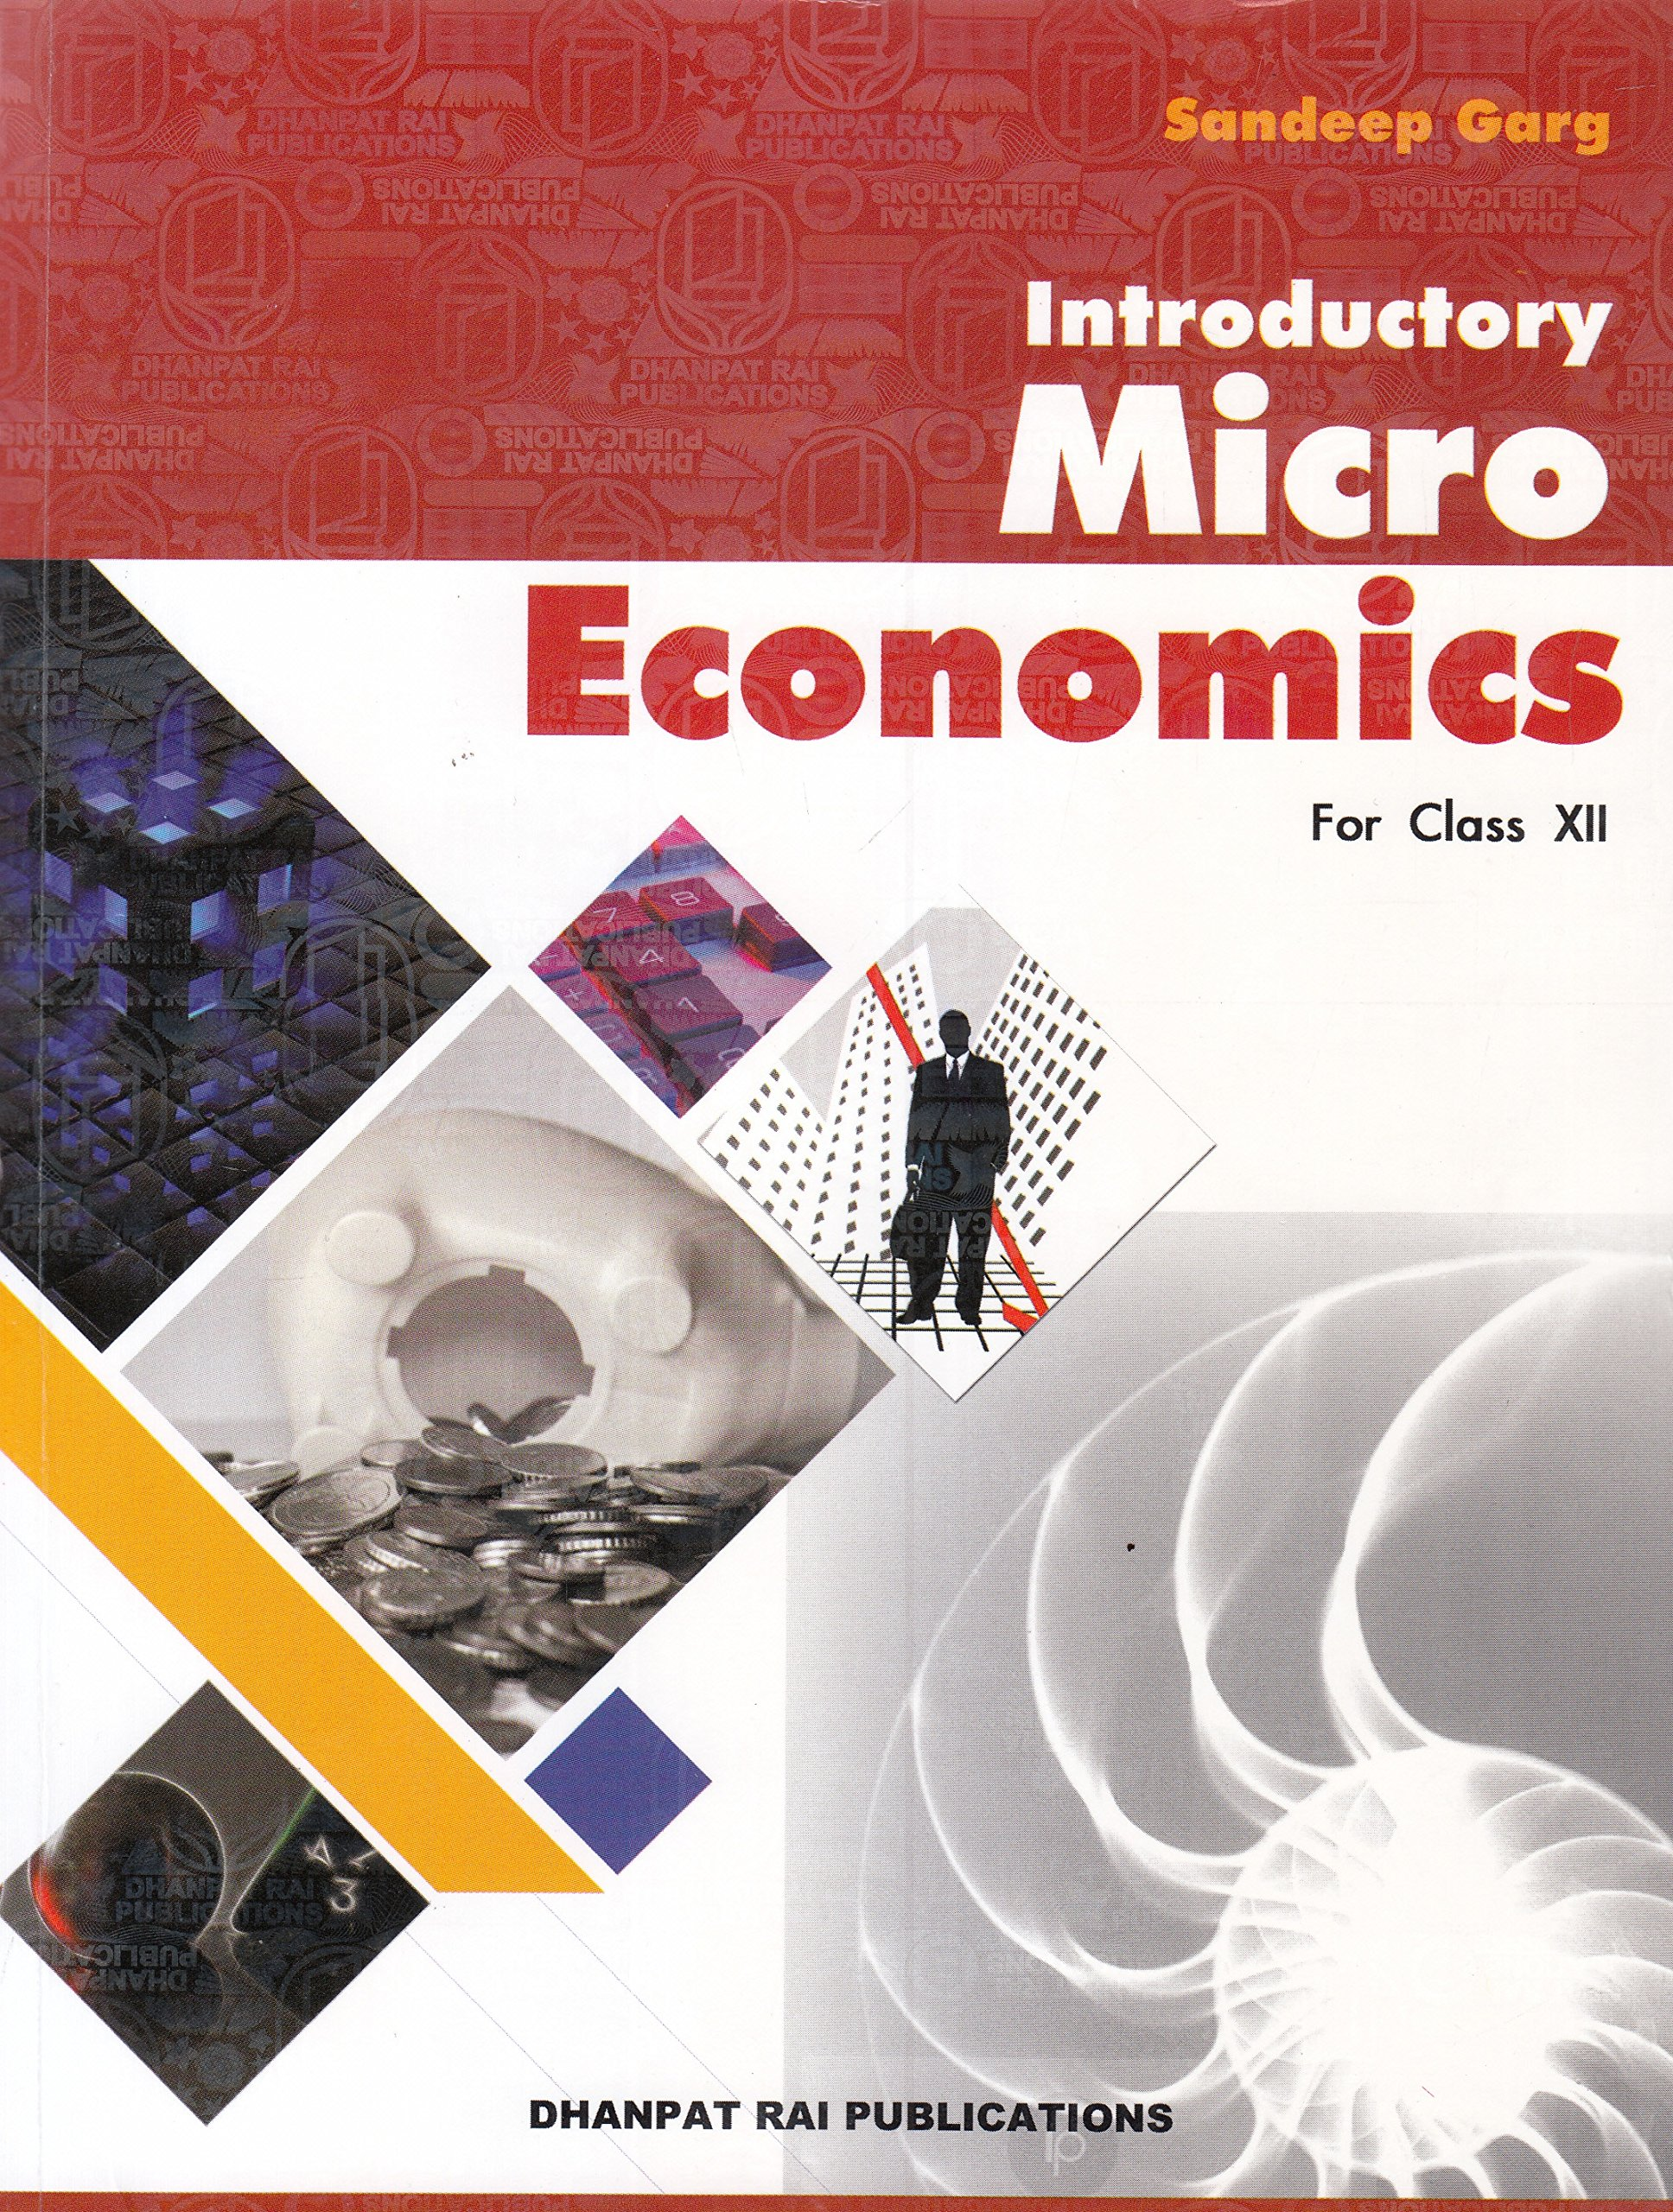 Introductory micro economics for class 12 for 2019 examination introductory micro economics for class 12 for 2019 examination amazon sandeep garg books fandeluxe Image collections